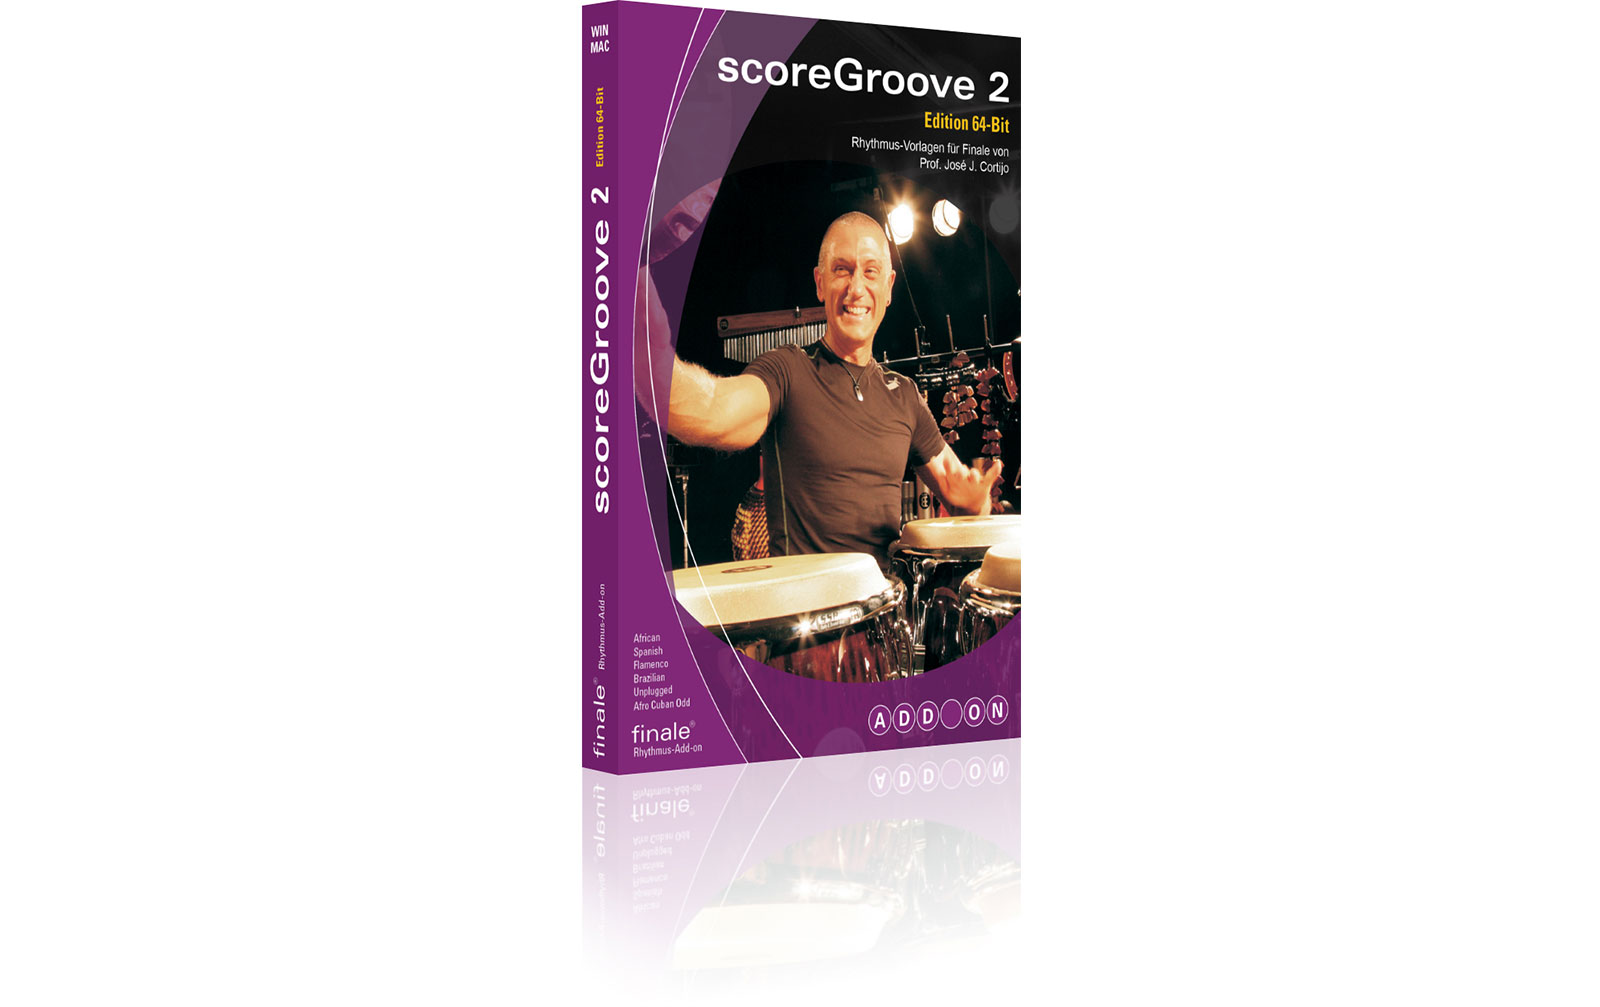 makemusic-scoregroove-vol-2-64-bit-edition